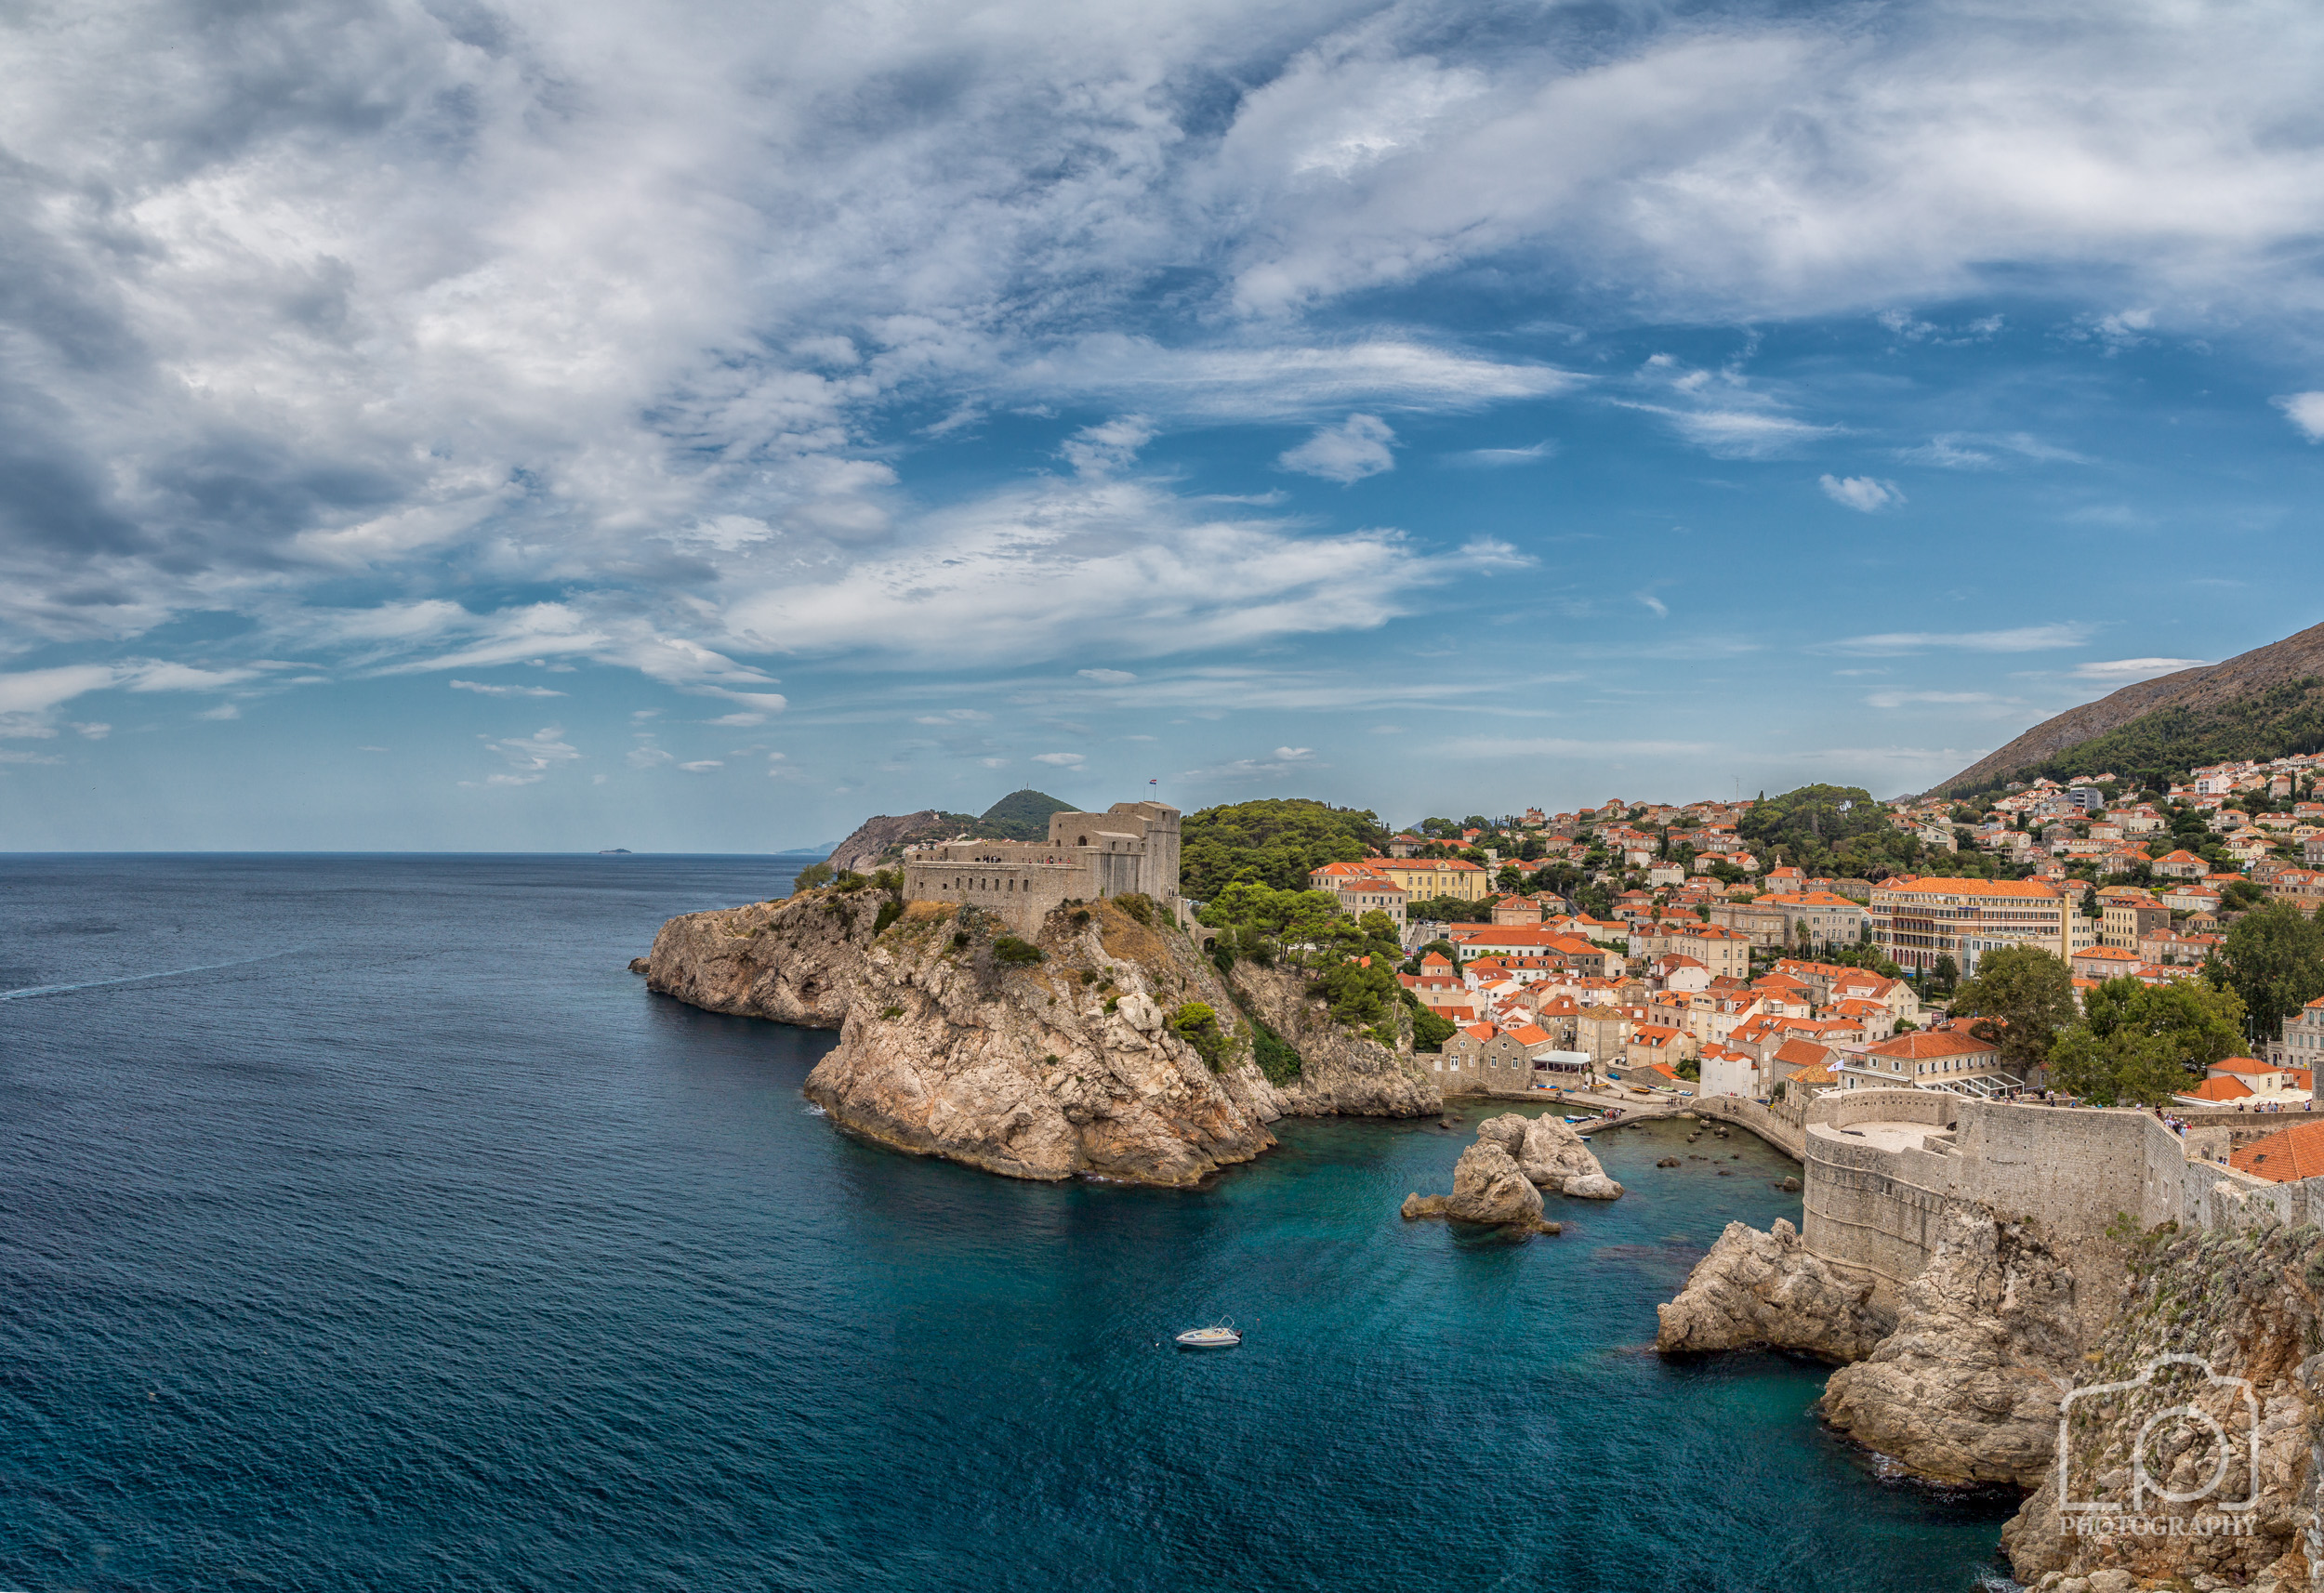 Kings Landing Pano - 9690